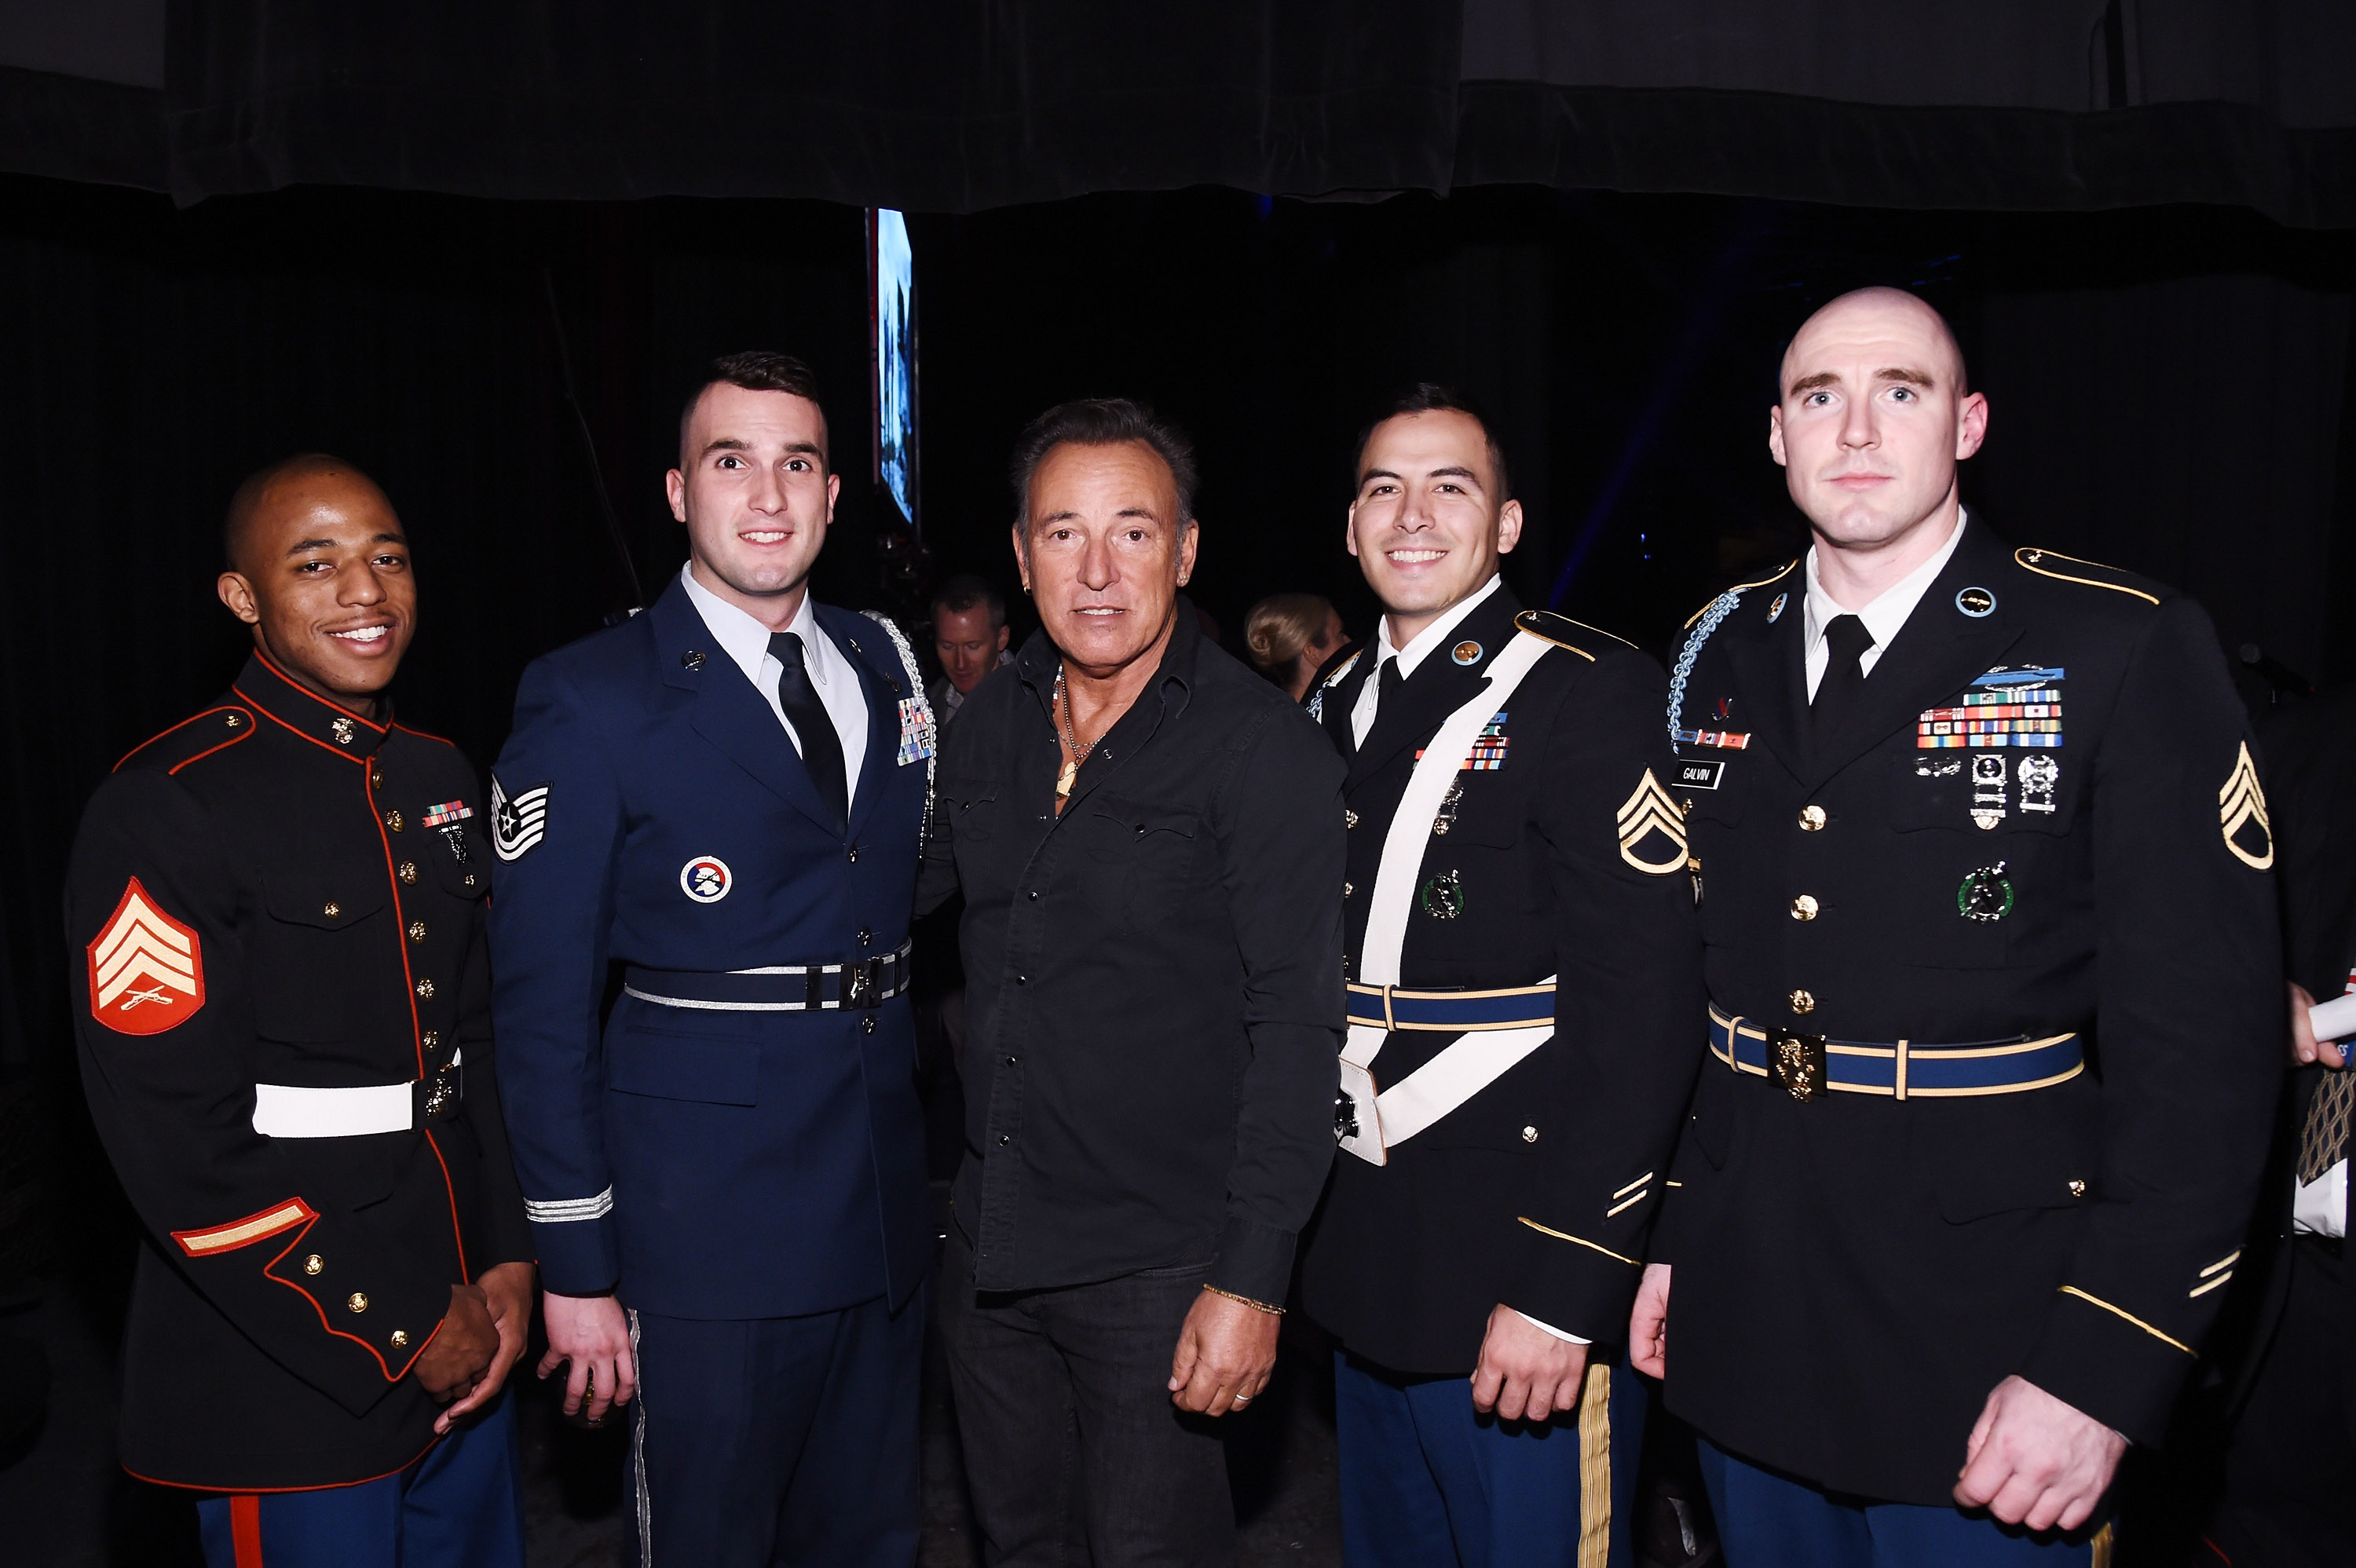 NEW YORK, NY - NOVEMBER 10: Musician Bruce Springsteen poses with soldiers backstage at the New York Comedy Festival and the Bob Woodruff Foundation's 9th Annual Stand Up For Heroes Event on November 10, 2015 in New York City. (Photo by Ilya S. Savenok/Getty Images for Academy of Motion Picture Arts and Science)